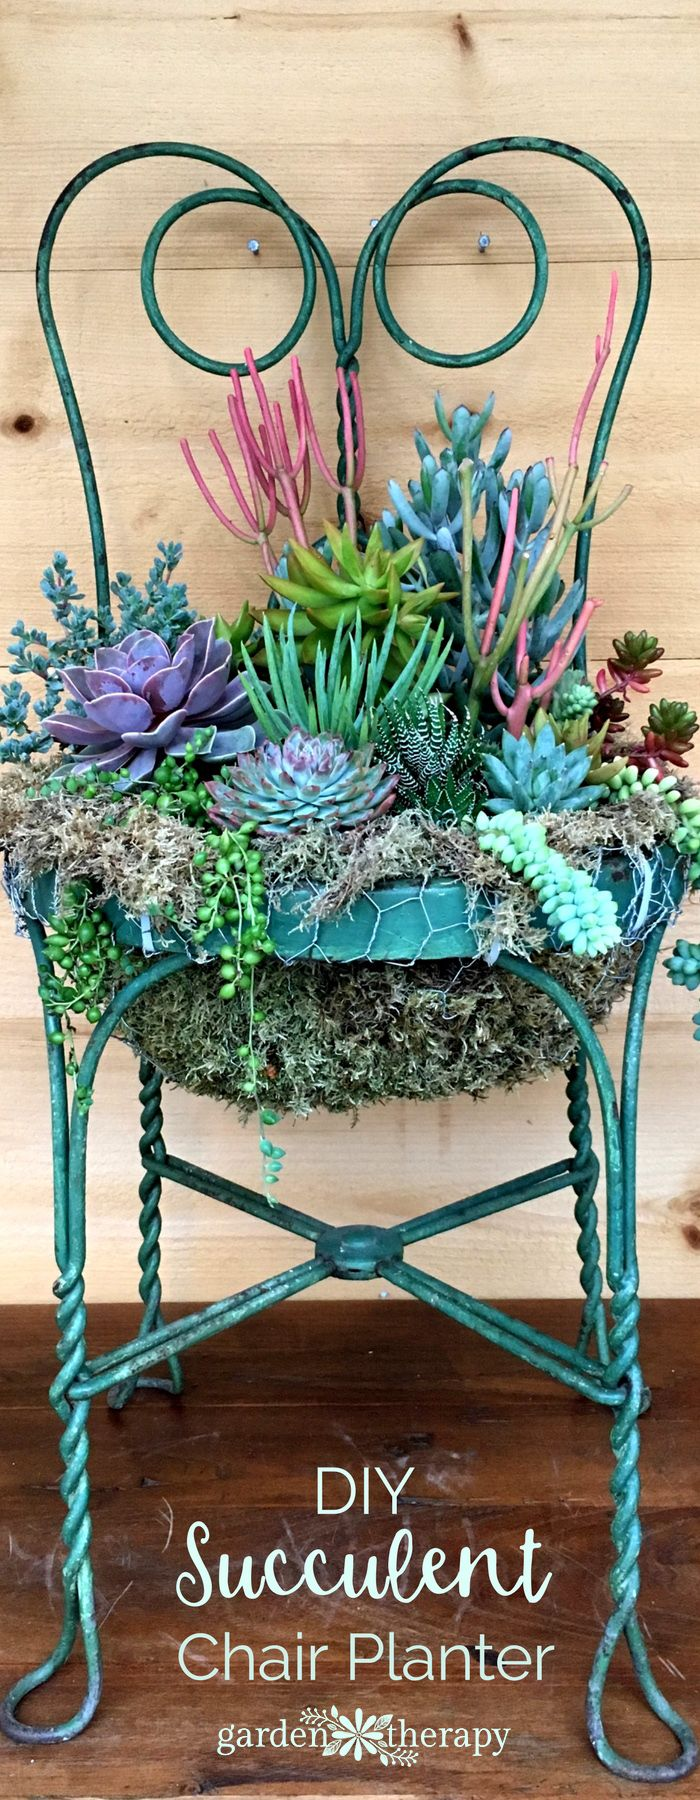 See How To Upcycle An Old Chair Into A Beautiful Piece Of Garden Art For Any